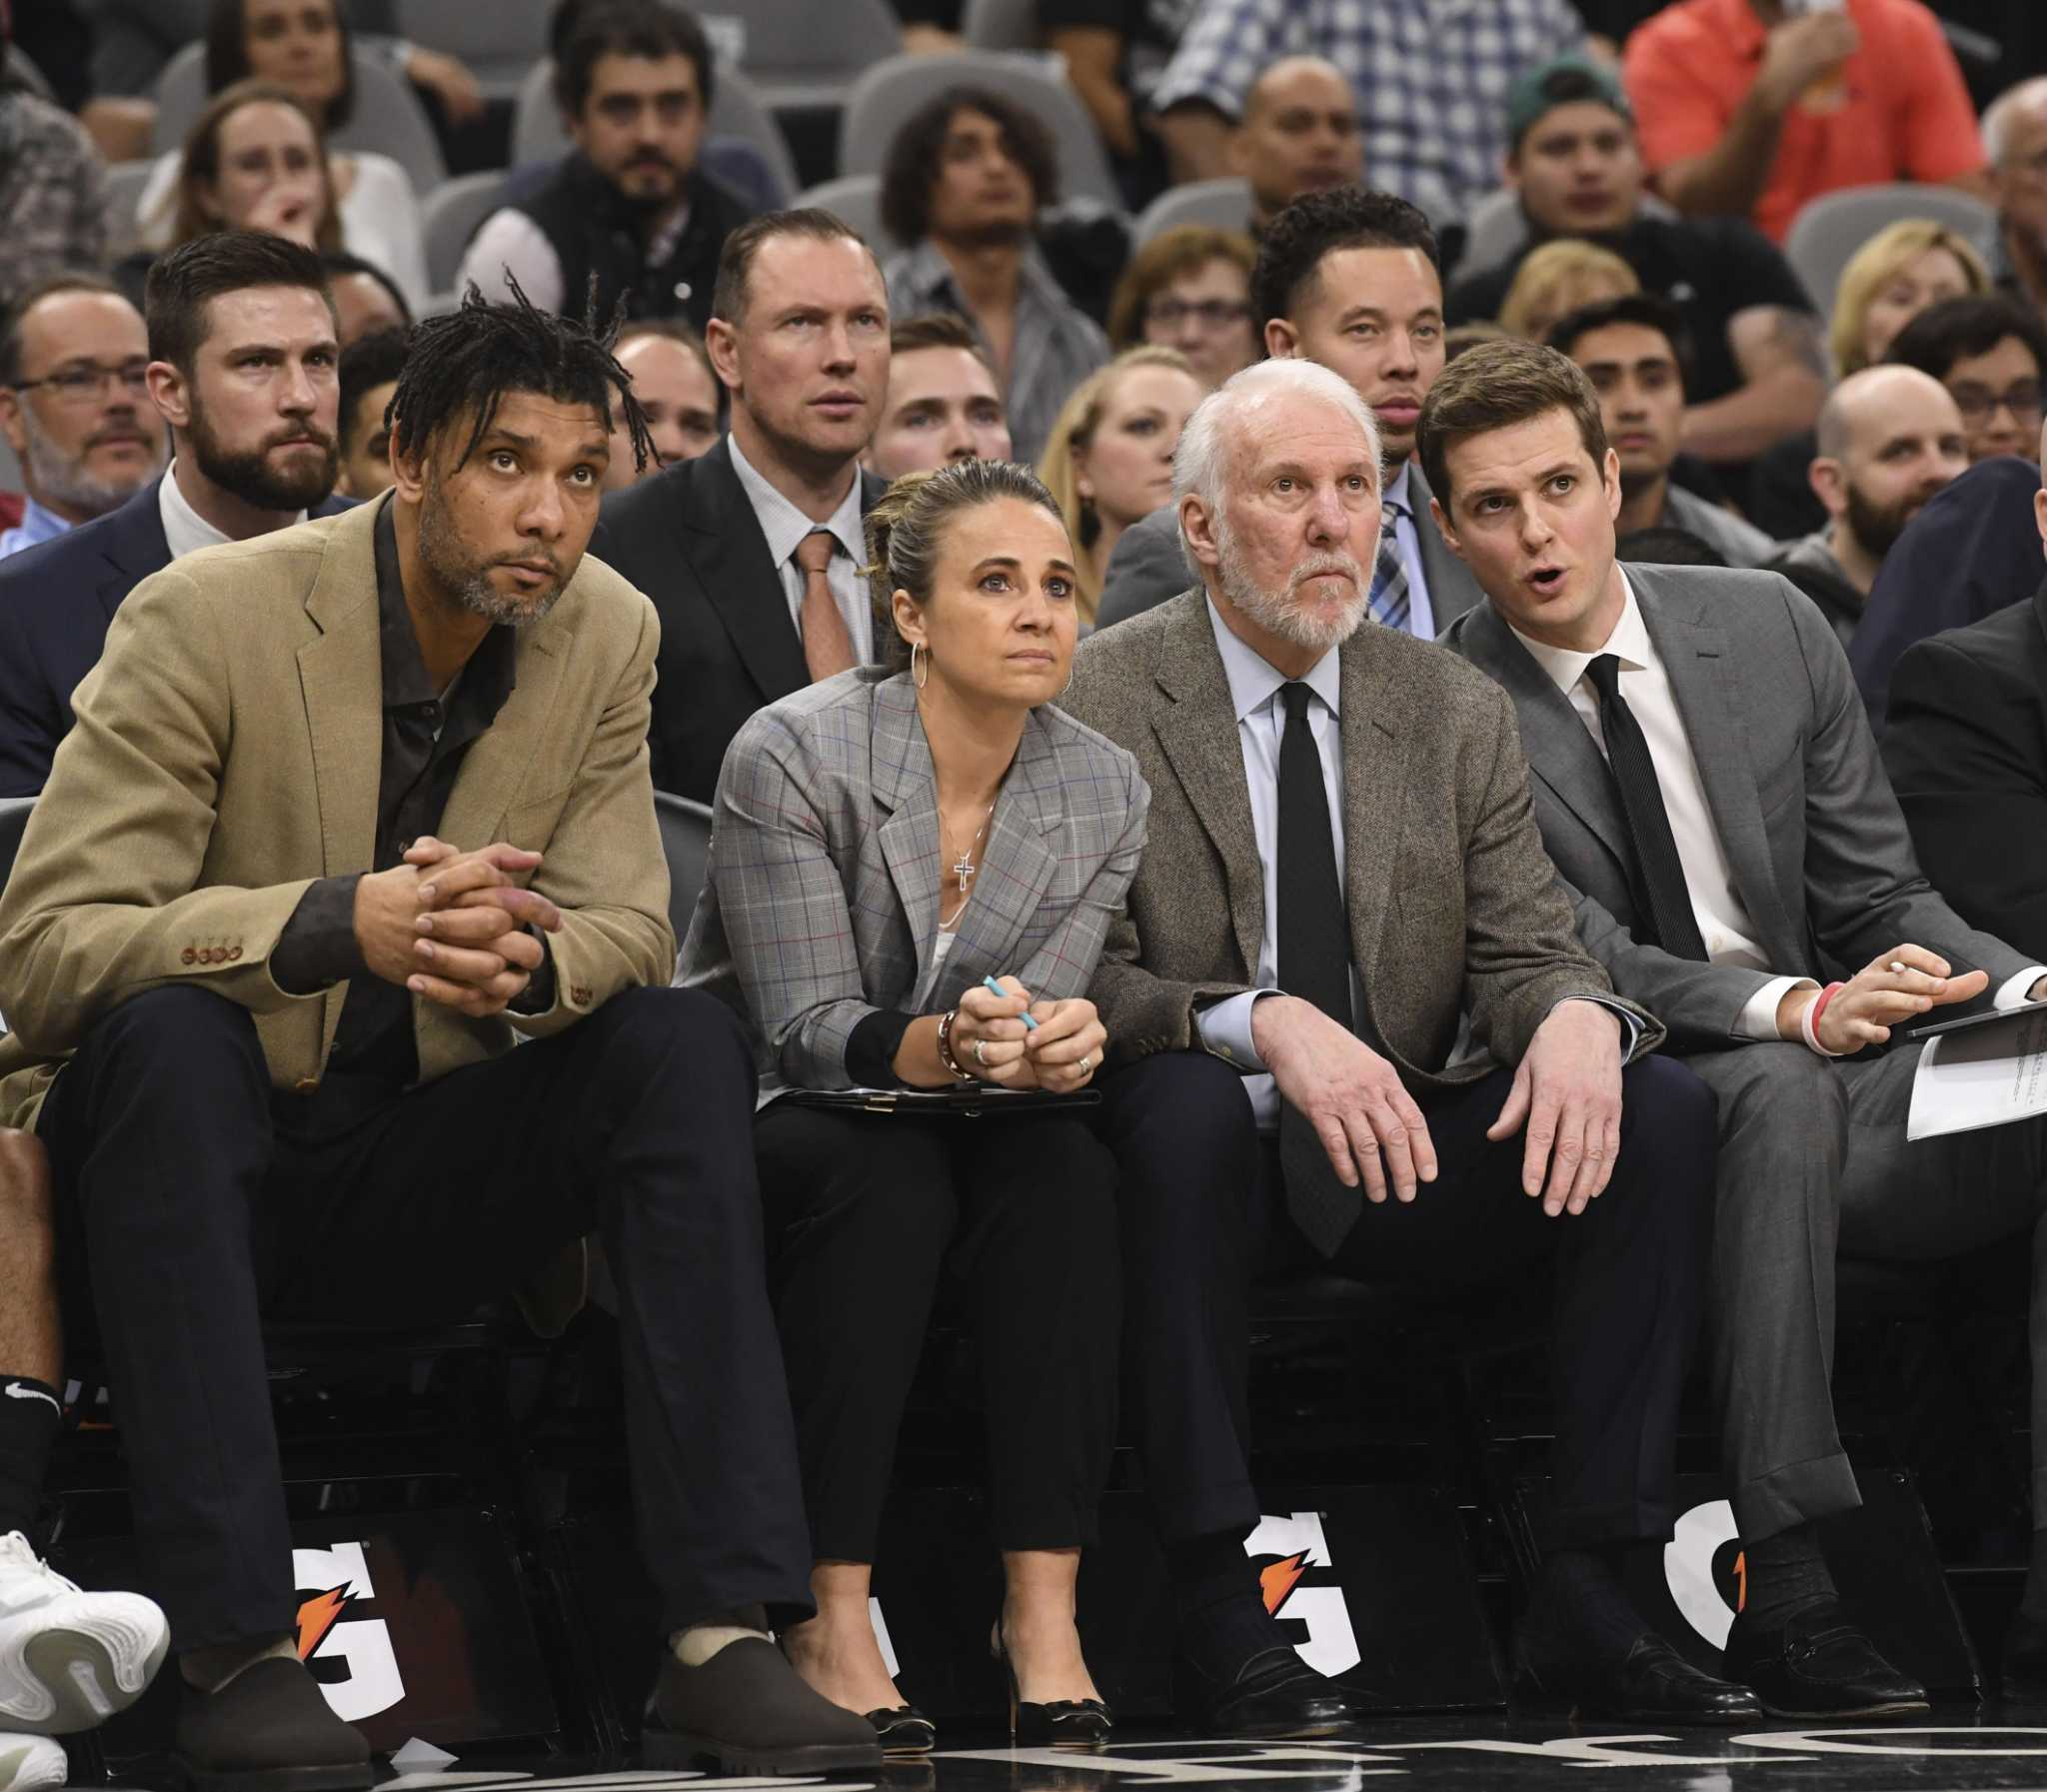 Female head coach in the NBA? It's Becky Hammon's time